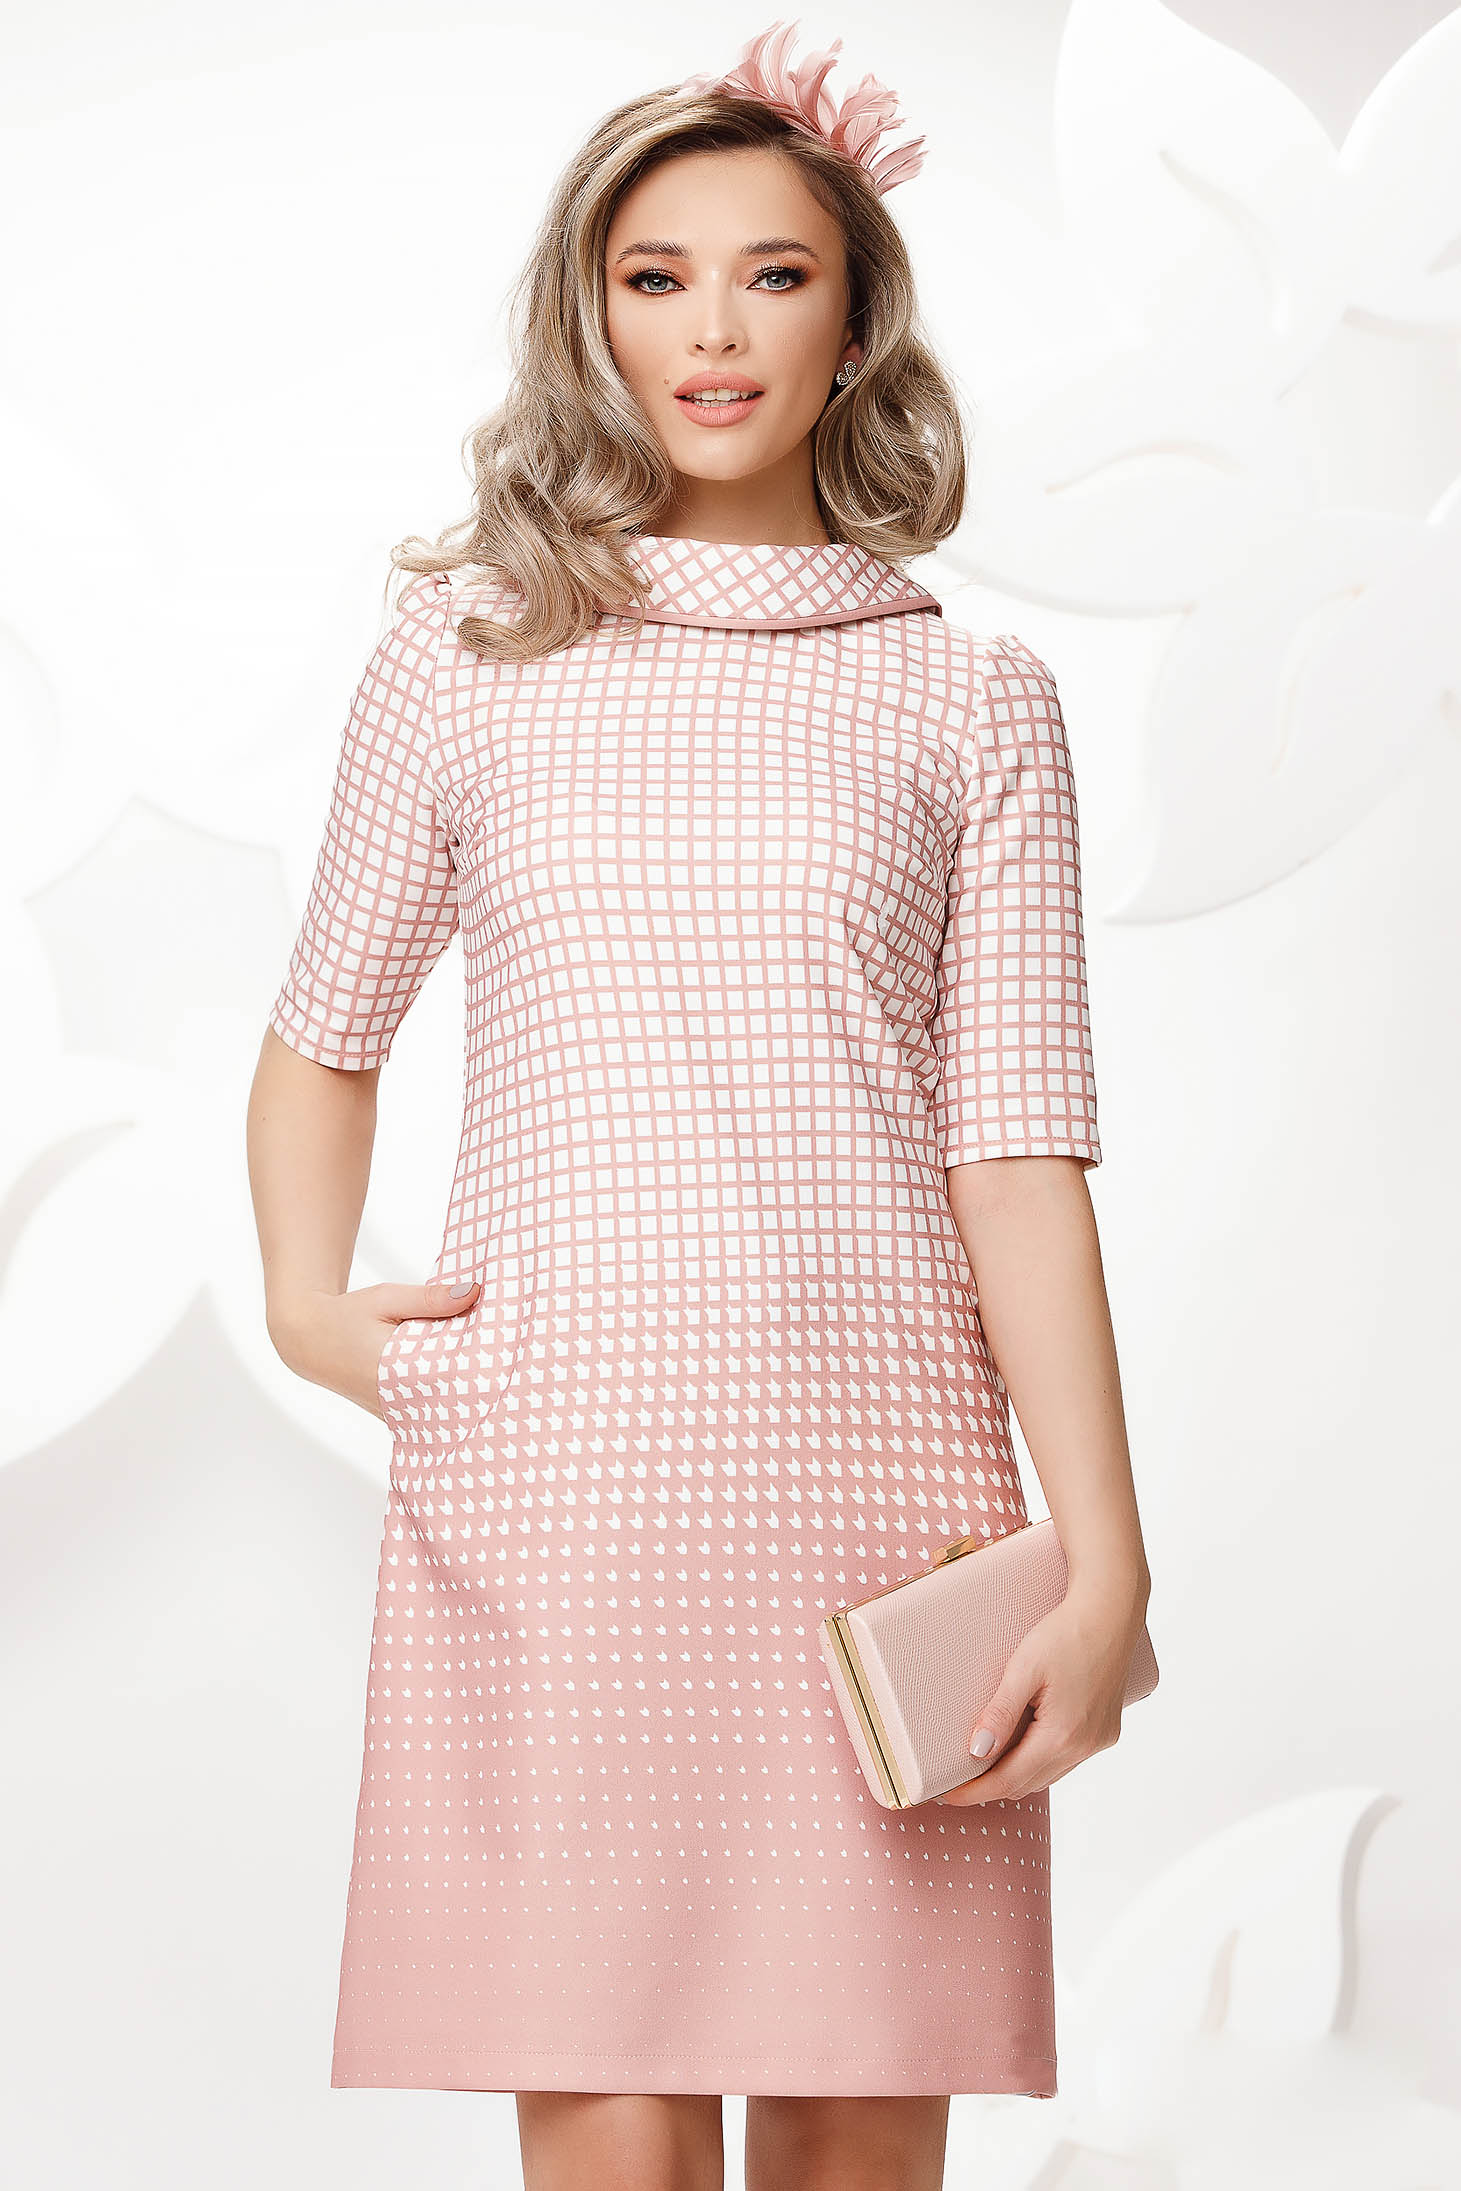 Lightpink dress office slightly elastic fabric double collar with chequers